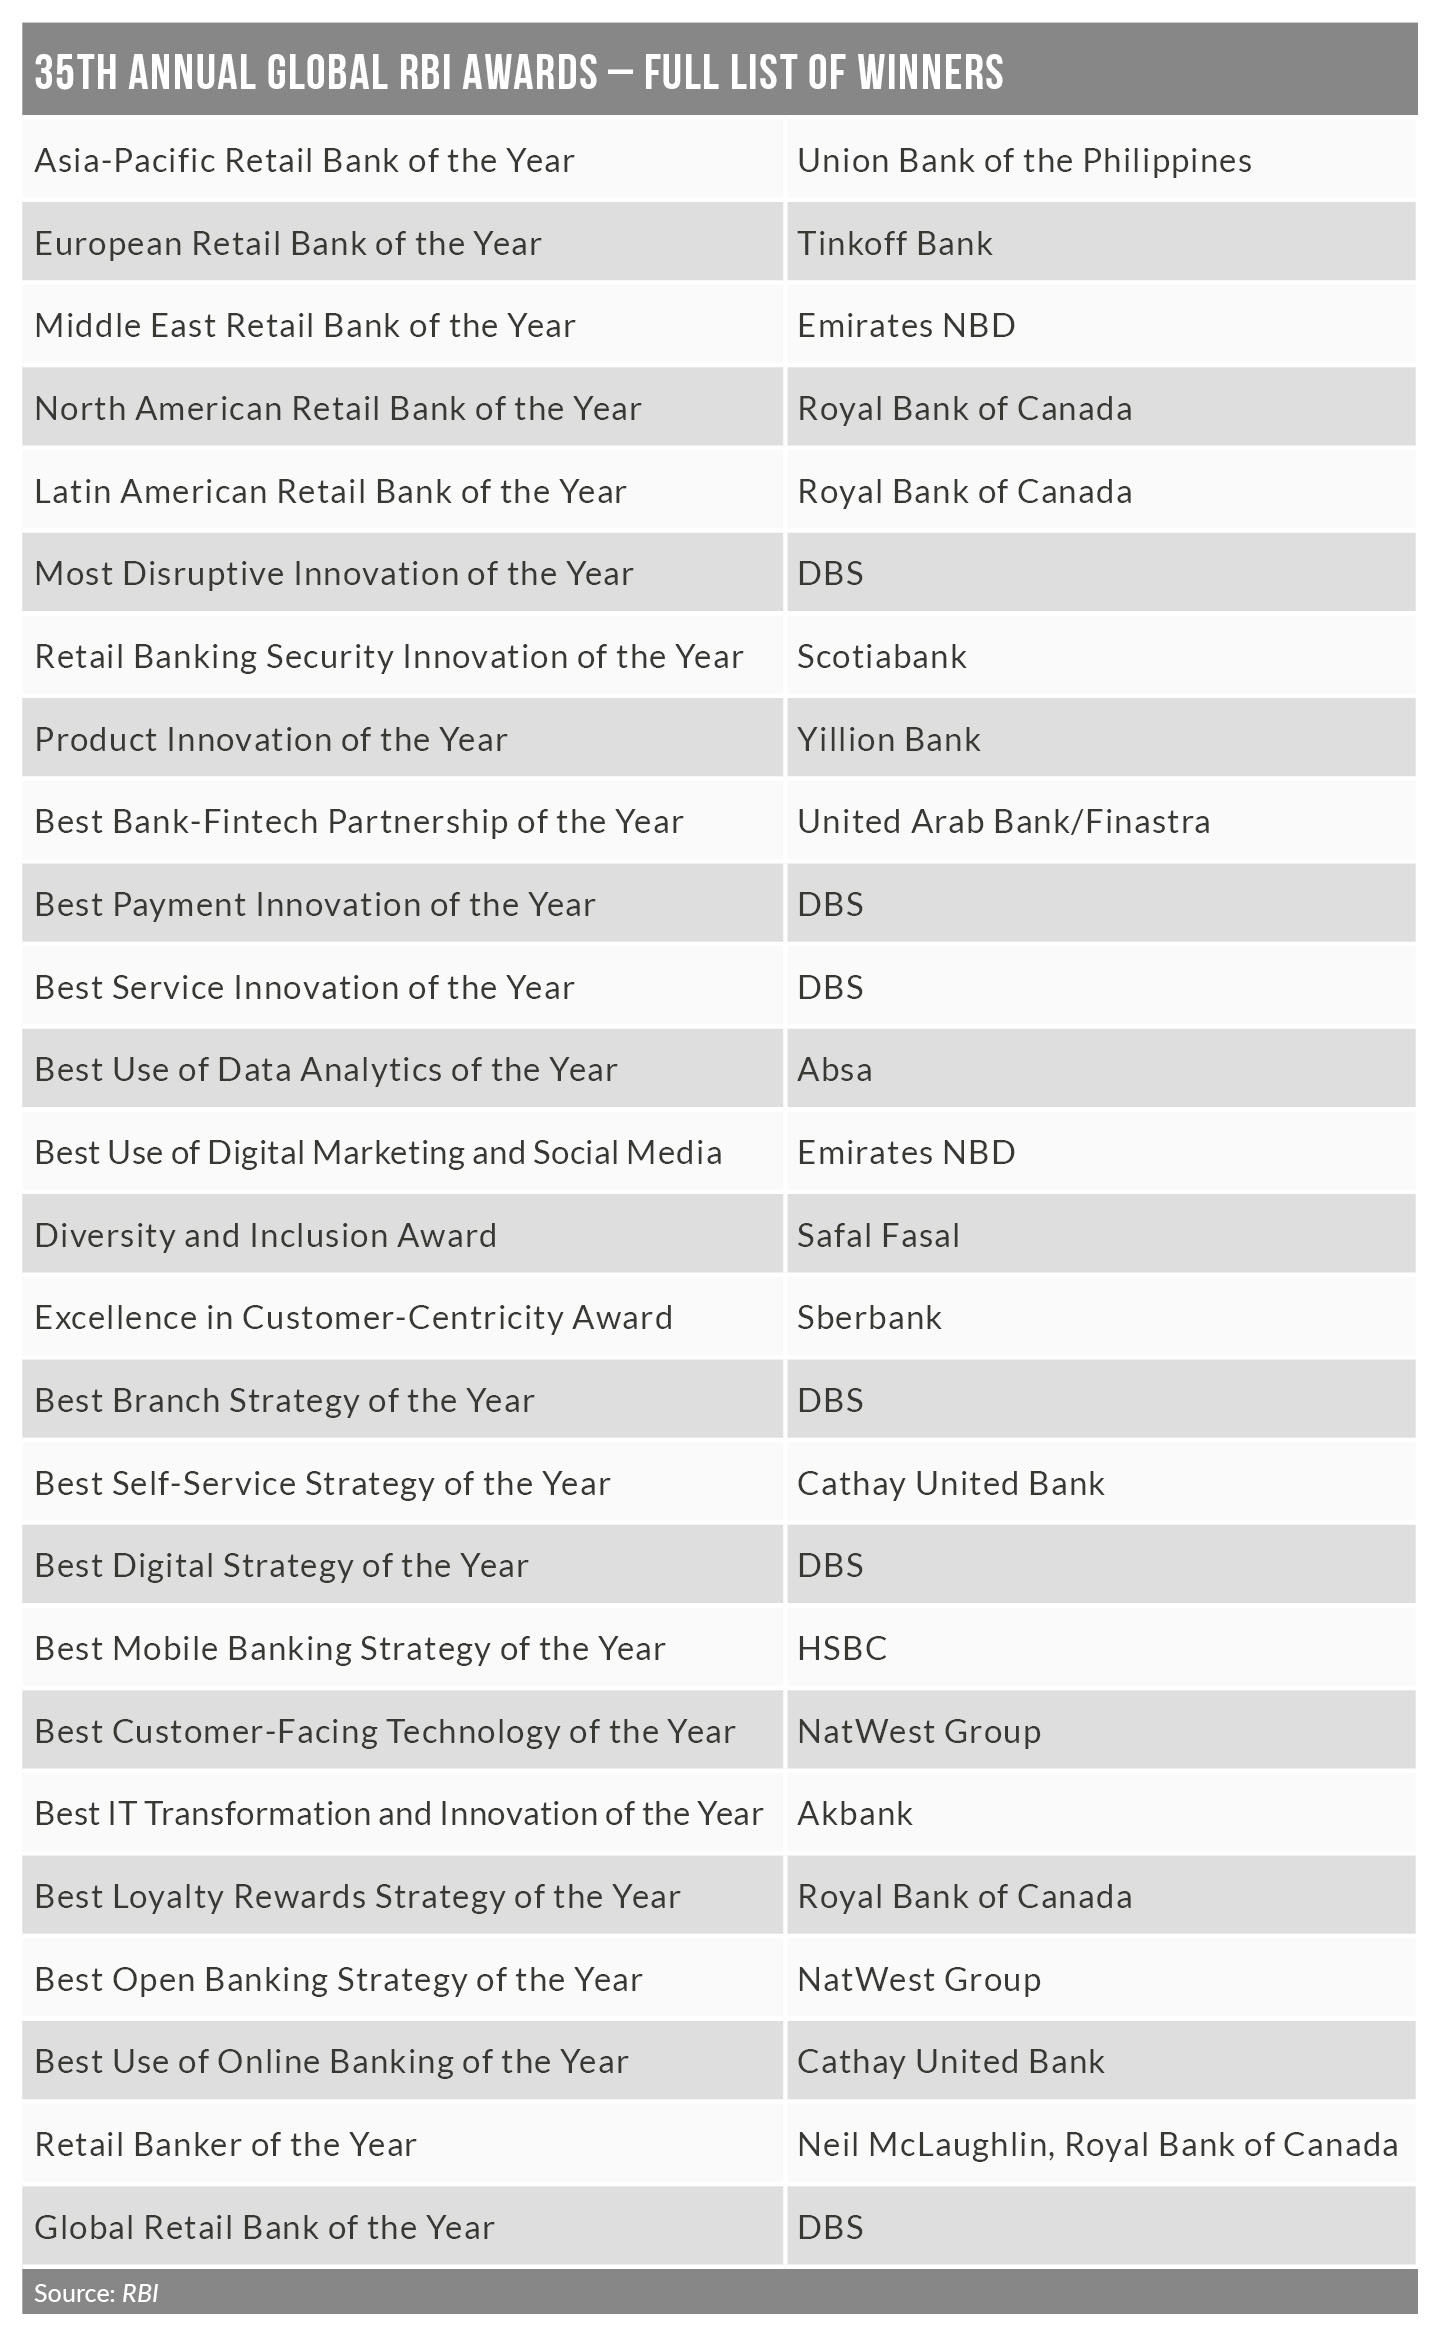 Awards table - DBS steals the show at the 35th annual global RBI awards